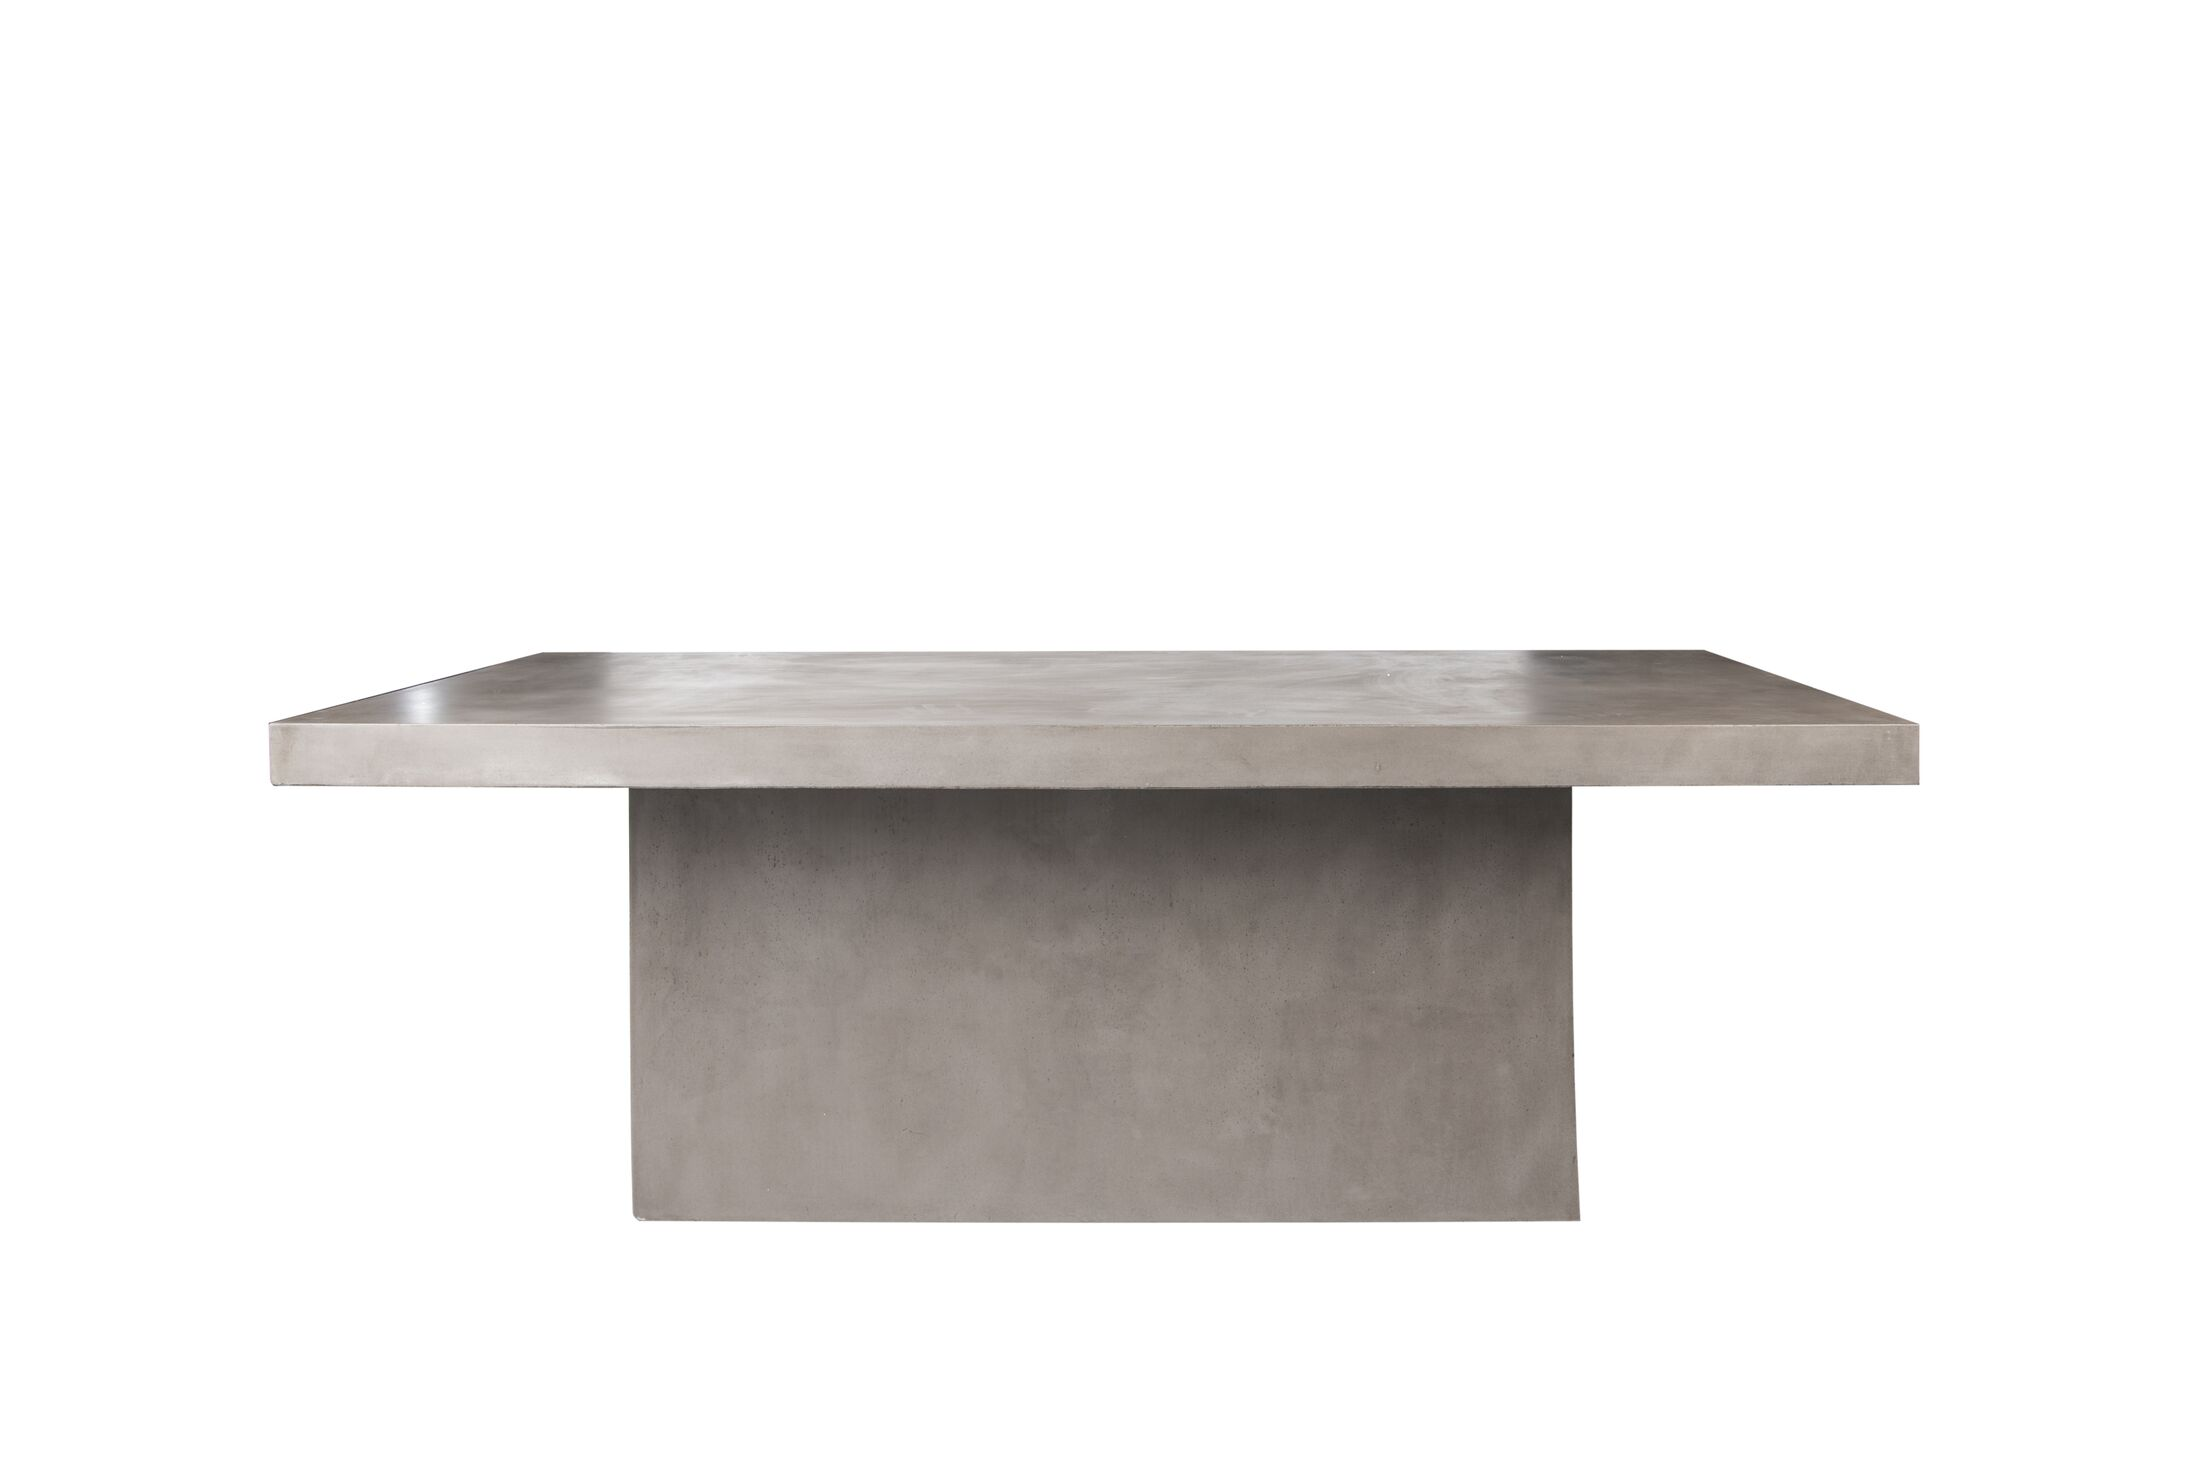 Linhart Stone/Concrete Dining Table